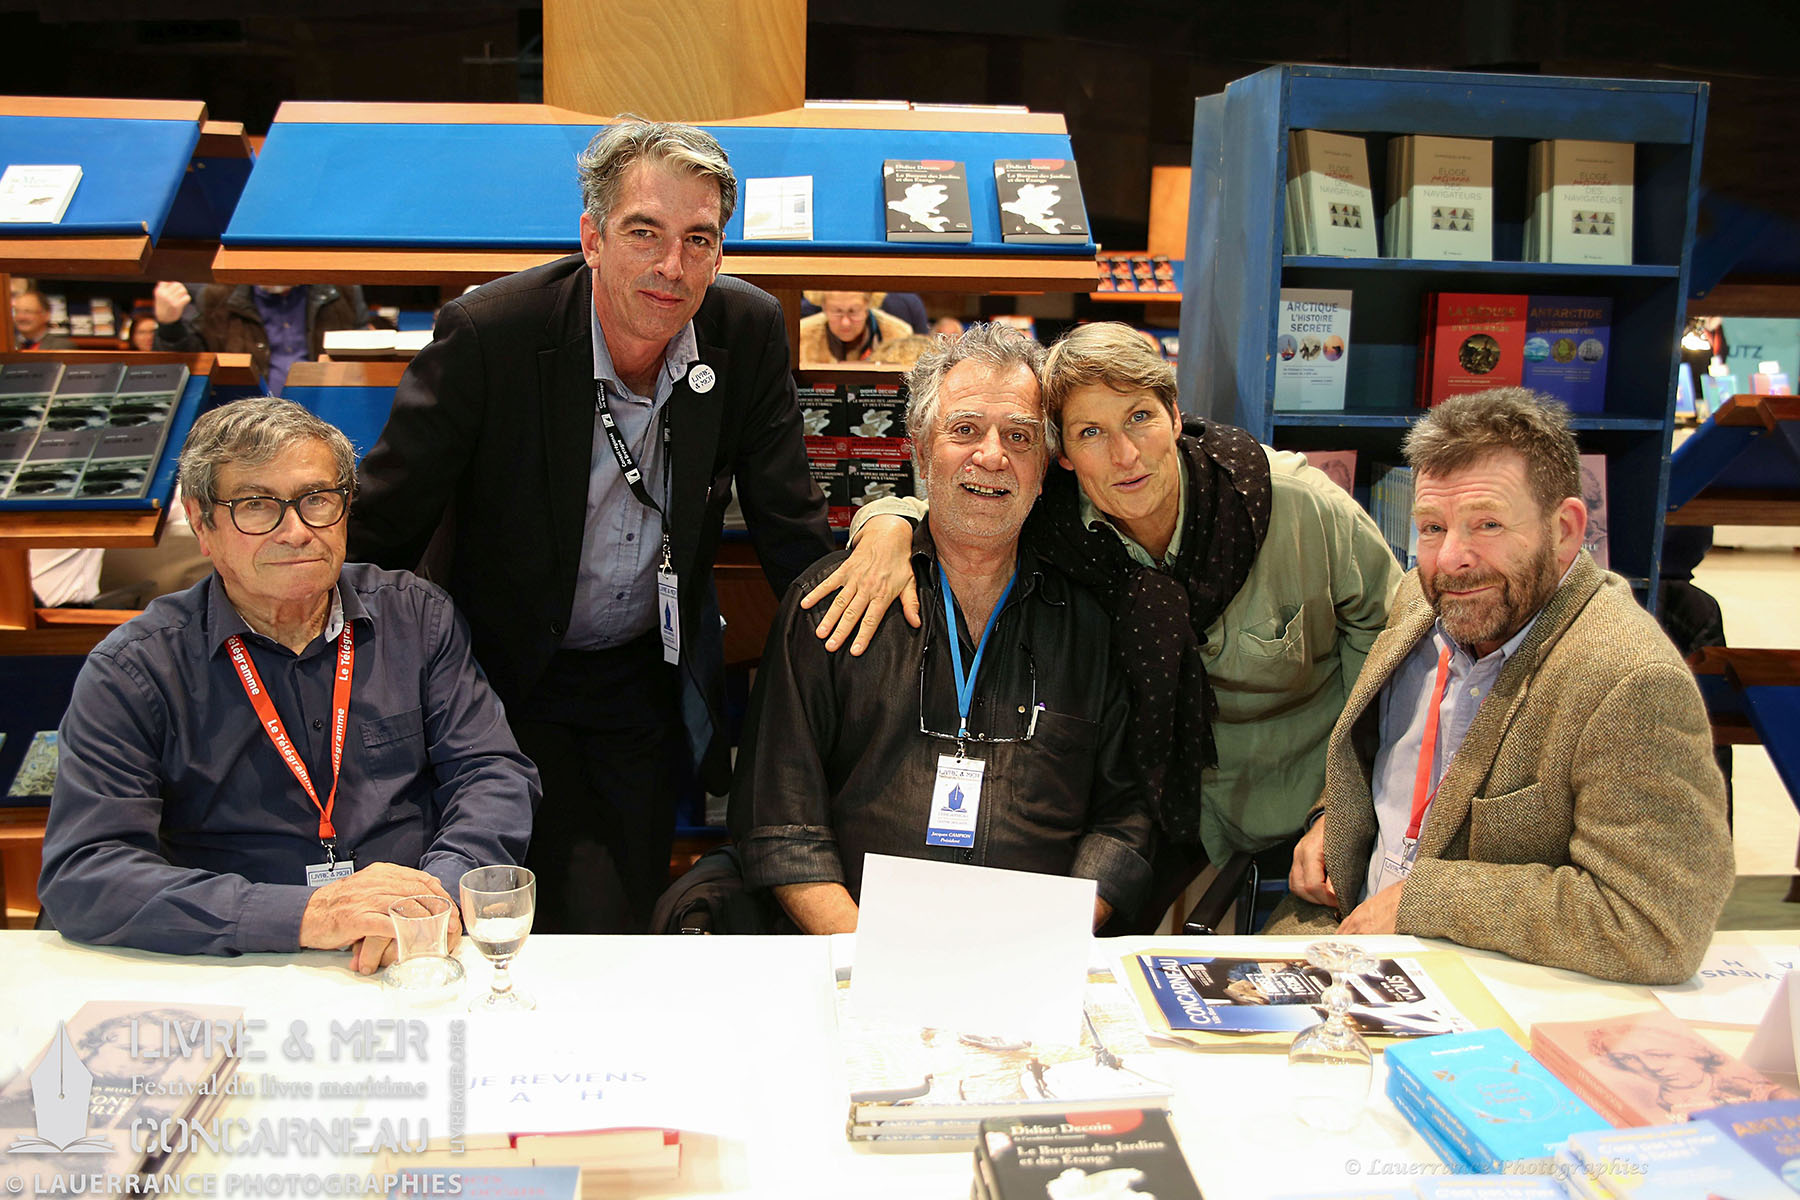 François Bellec, BHLG, Jacques Campion, Anne Quéméré & Dominique Le Brun © Lauerrance Photographies